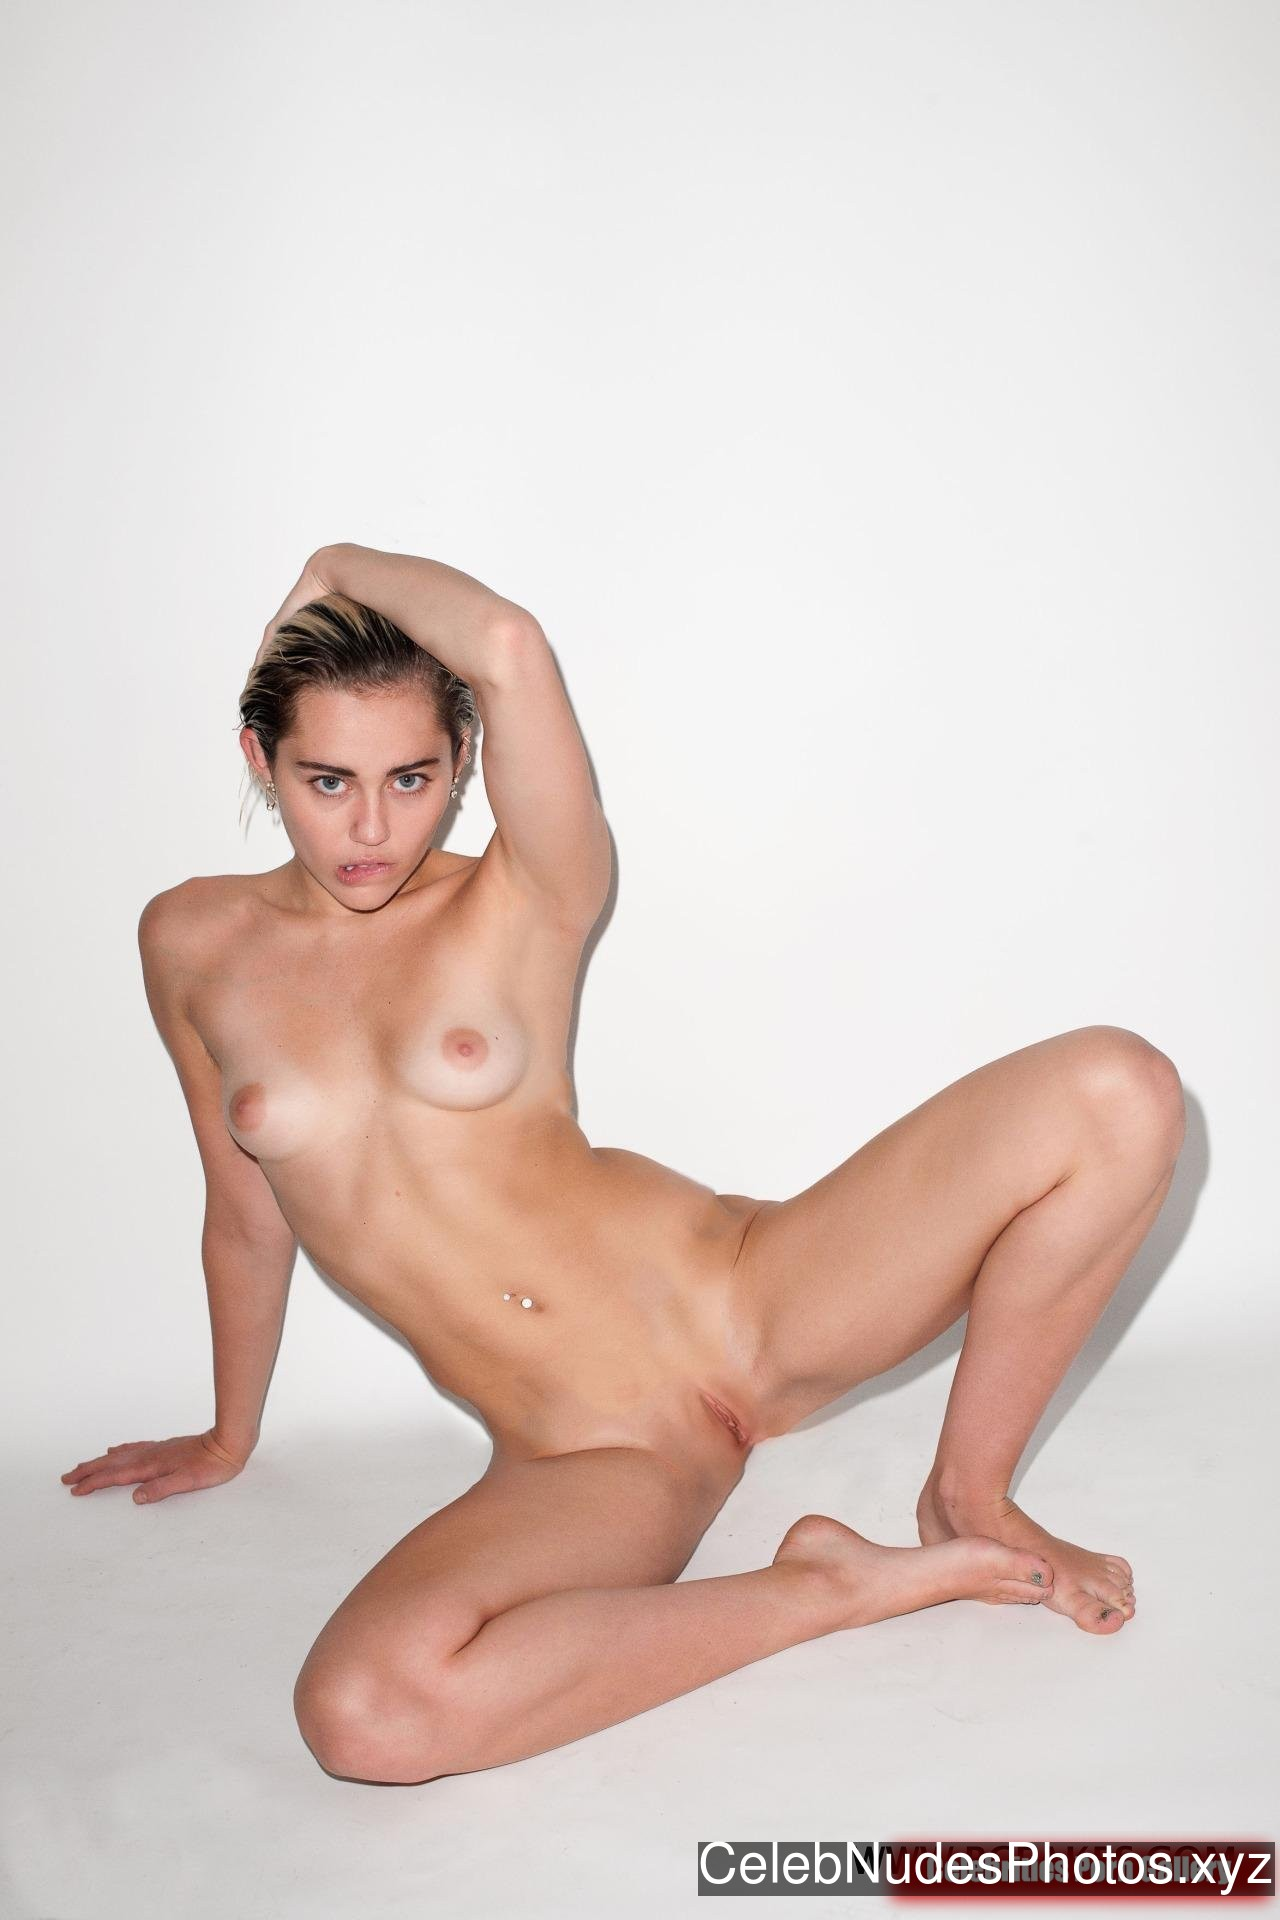 Charming Miley cyrus nudes and sex are not